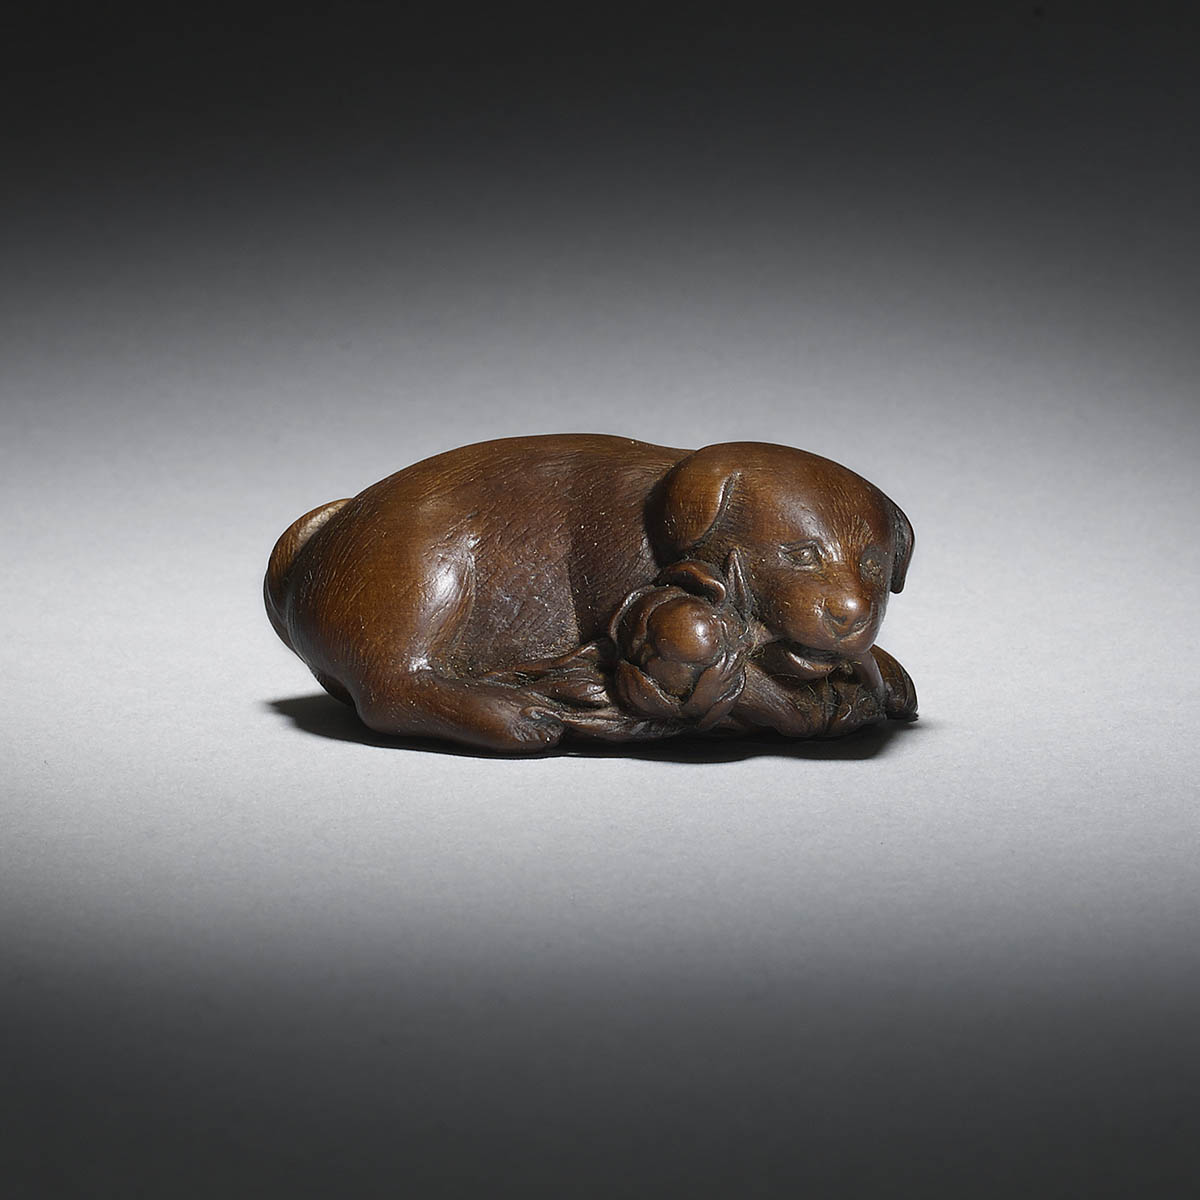 Boxwood netsuke of a dog by Shugetsu I